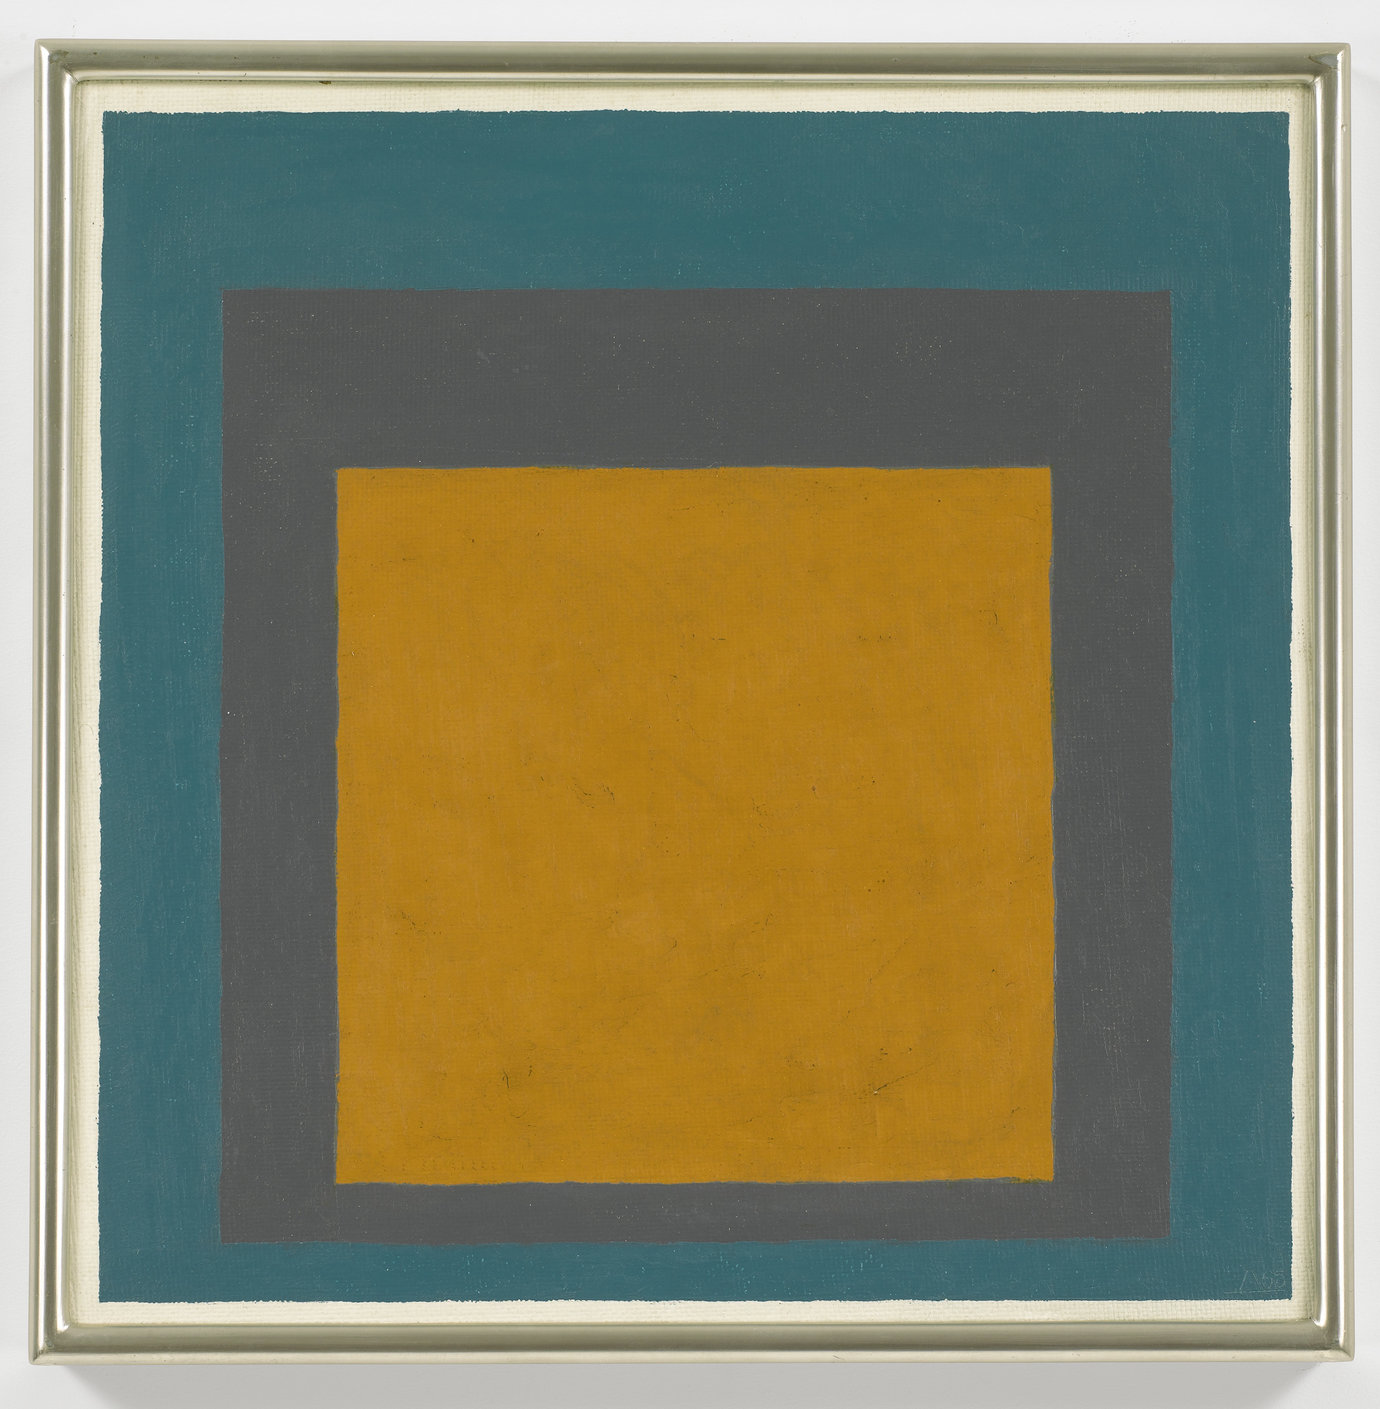 ", 1965. oil on masonite, 16"" x 16"" (40.6 cm x 40.6 cm)."